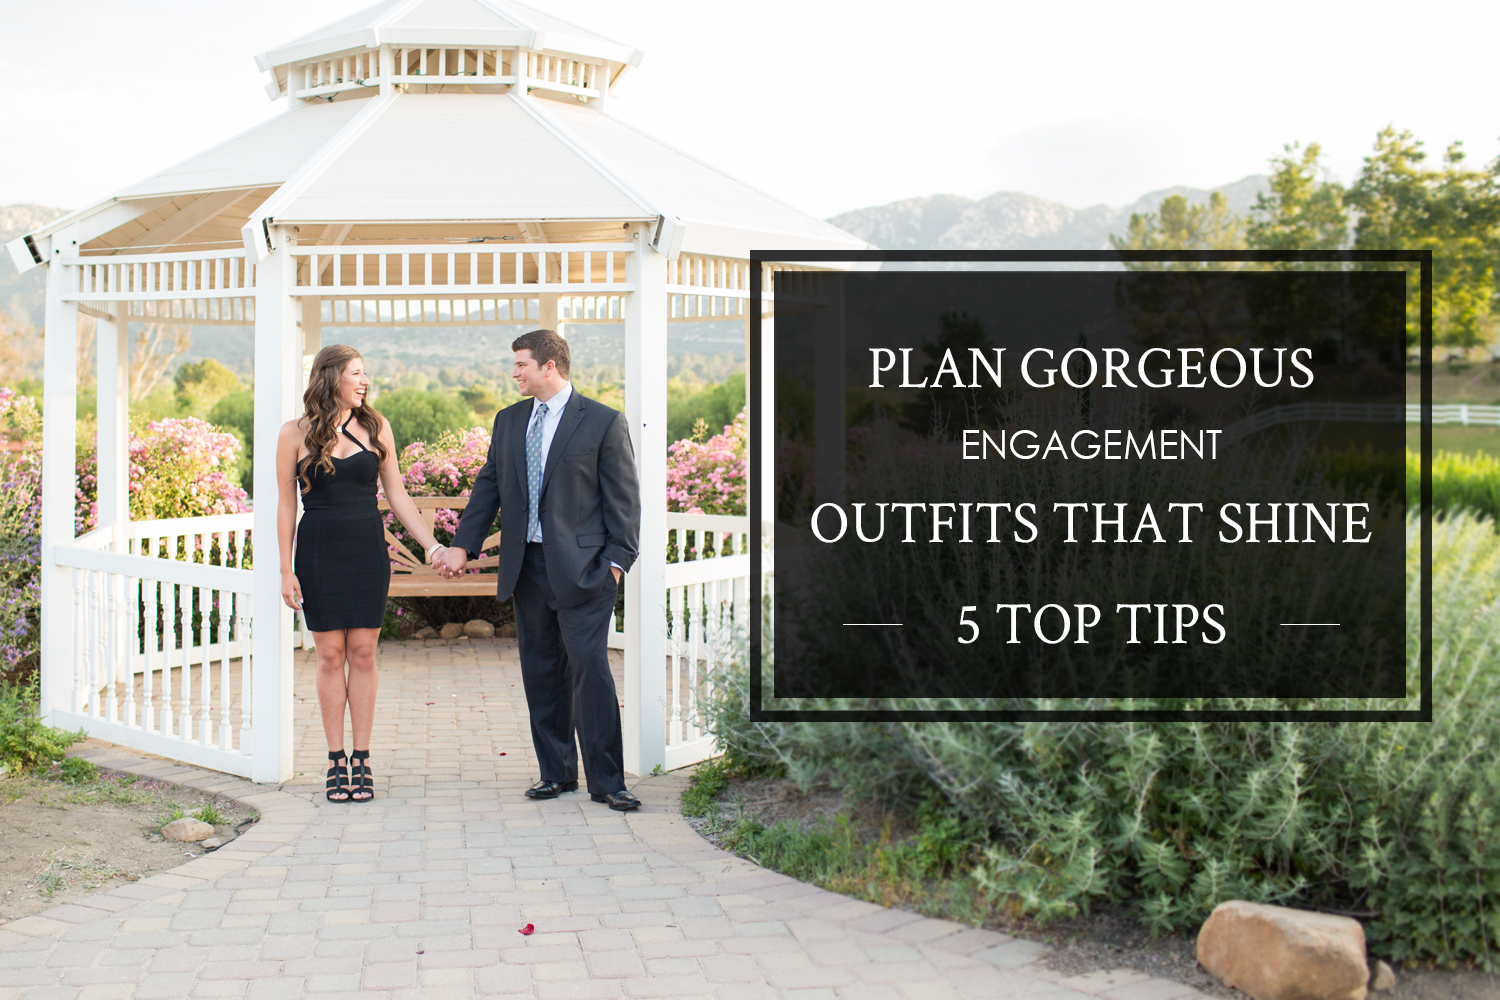 Outfit Tipps 5 Engagement Outfit Tips Engagement Session Clothing